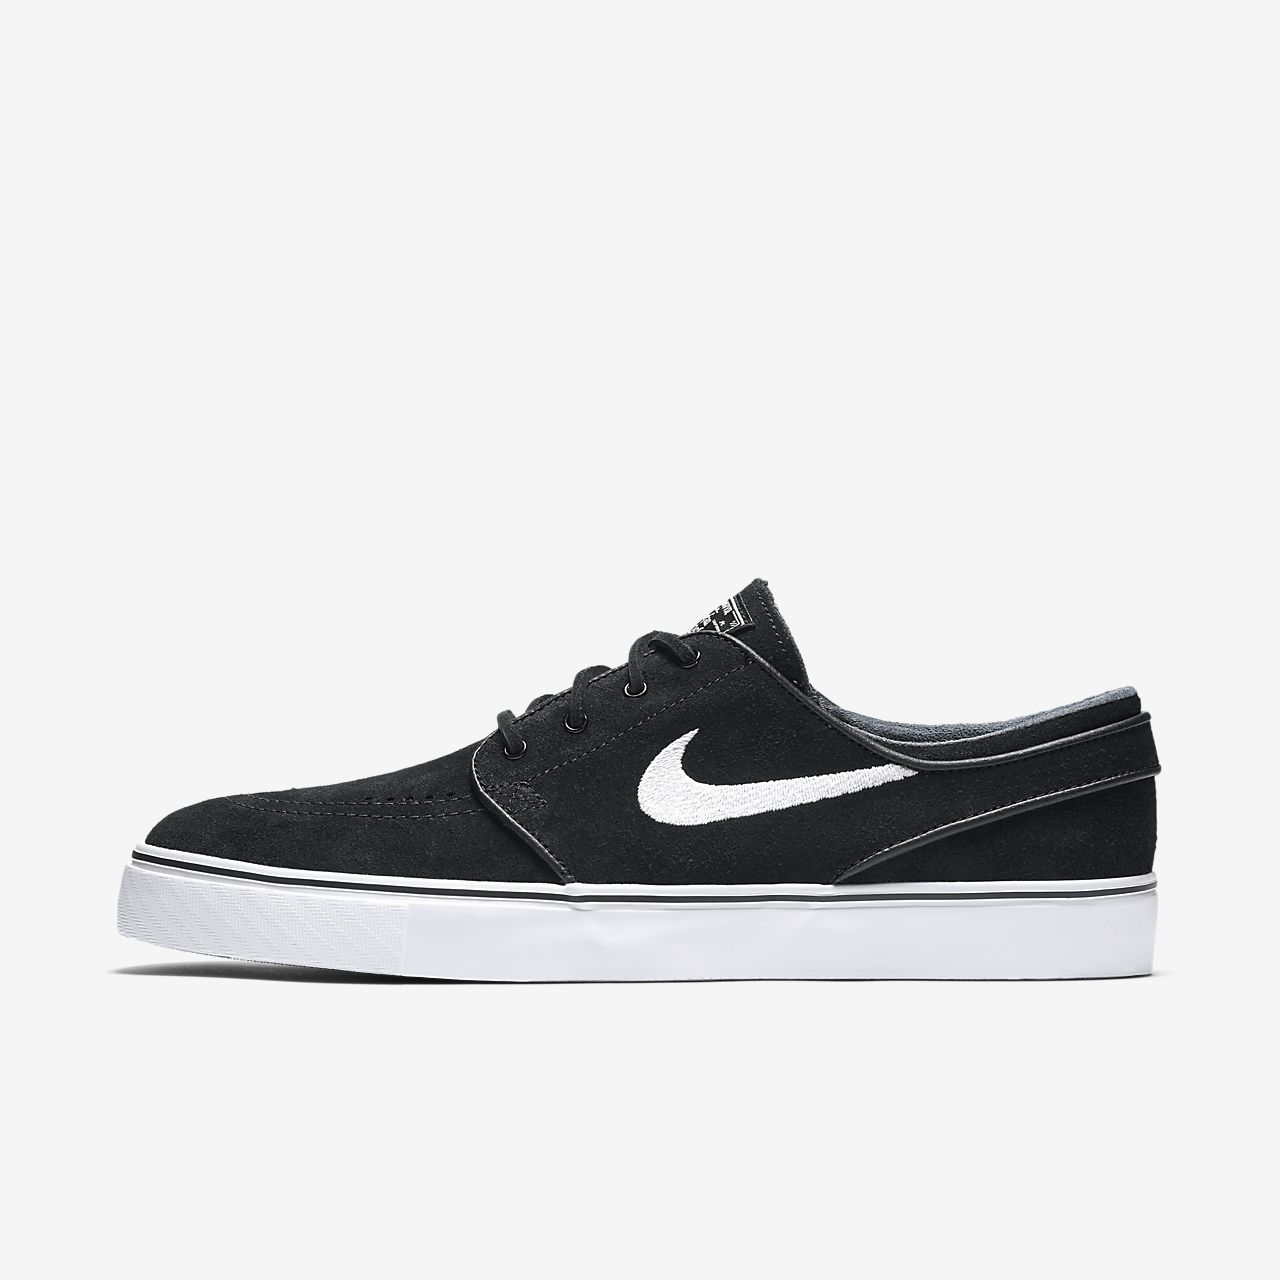 Nike SB Zoom Stefan Janoski Boys Skateboarding Shoes Black/Brown/White vQ6111Q